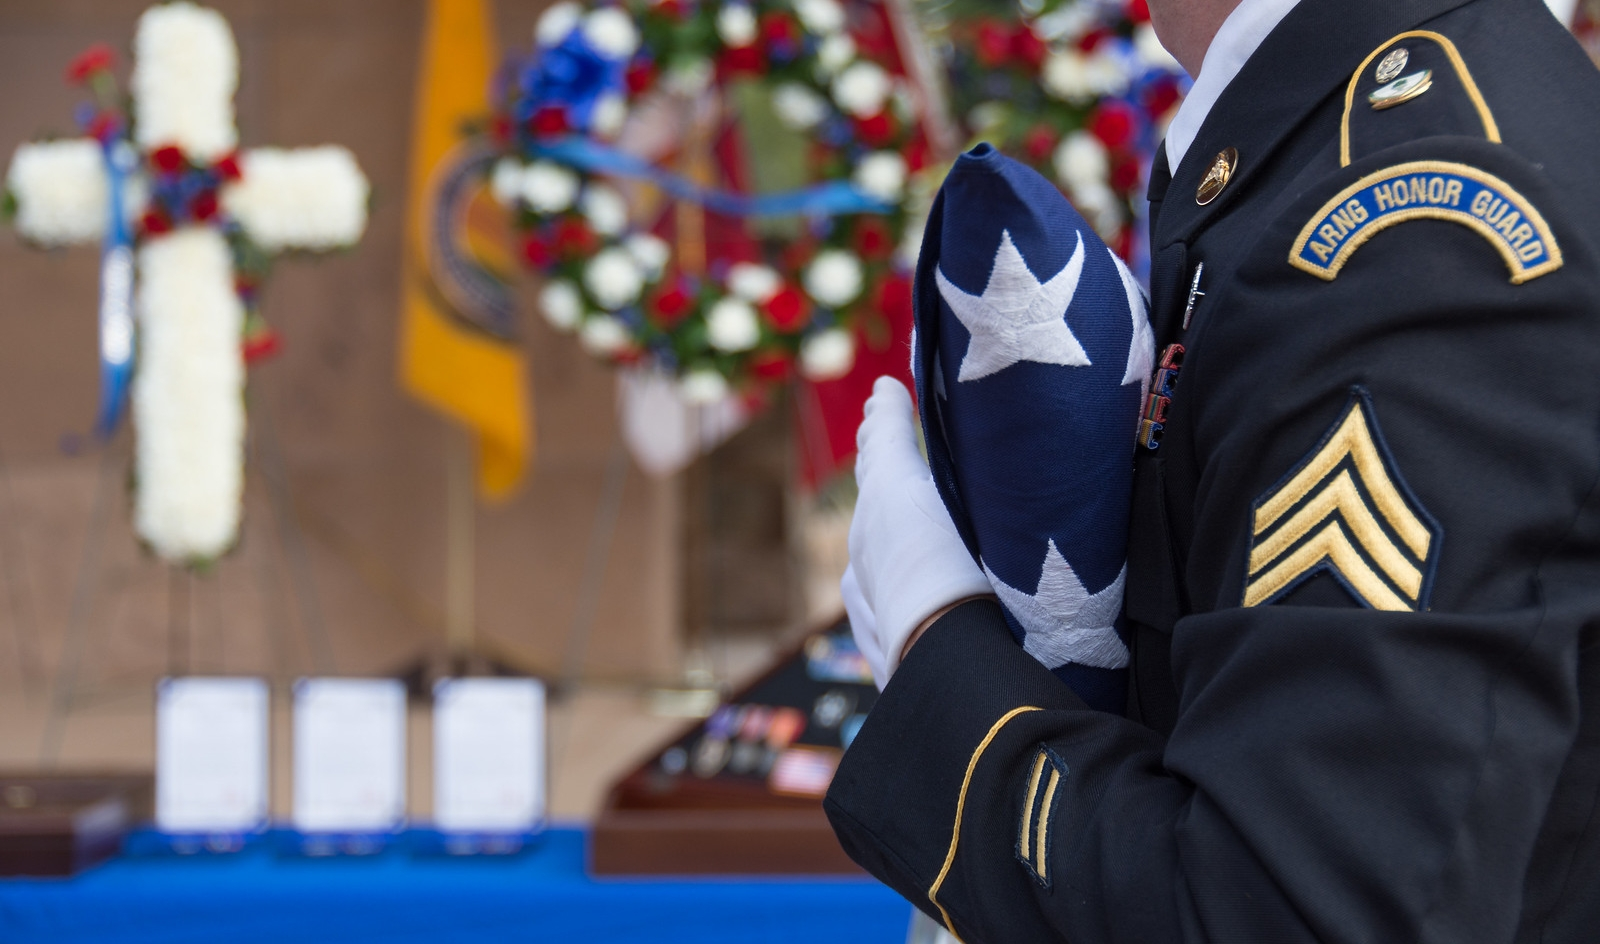 A soldier hands a family member of a fallen soldier a folded American flag